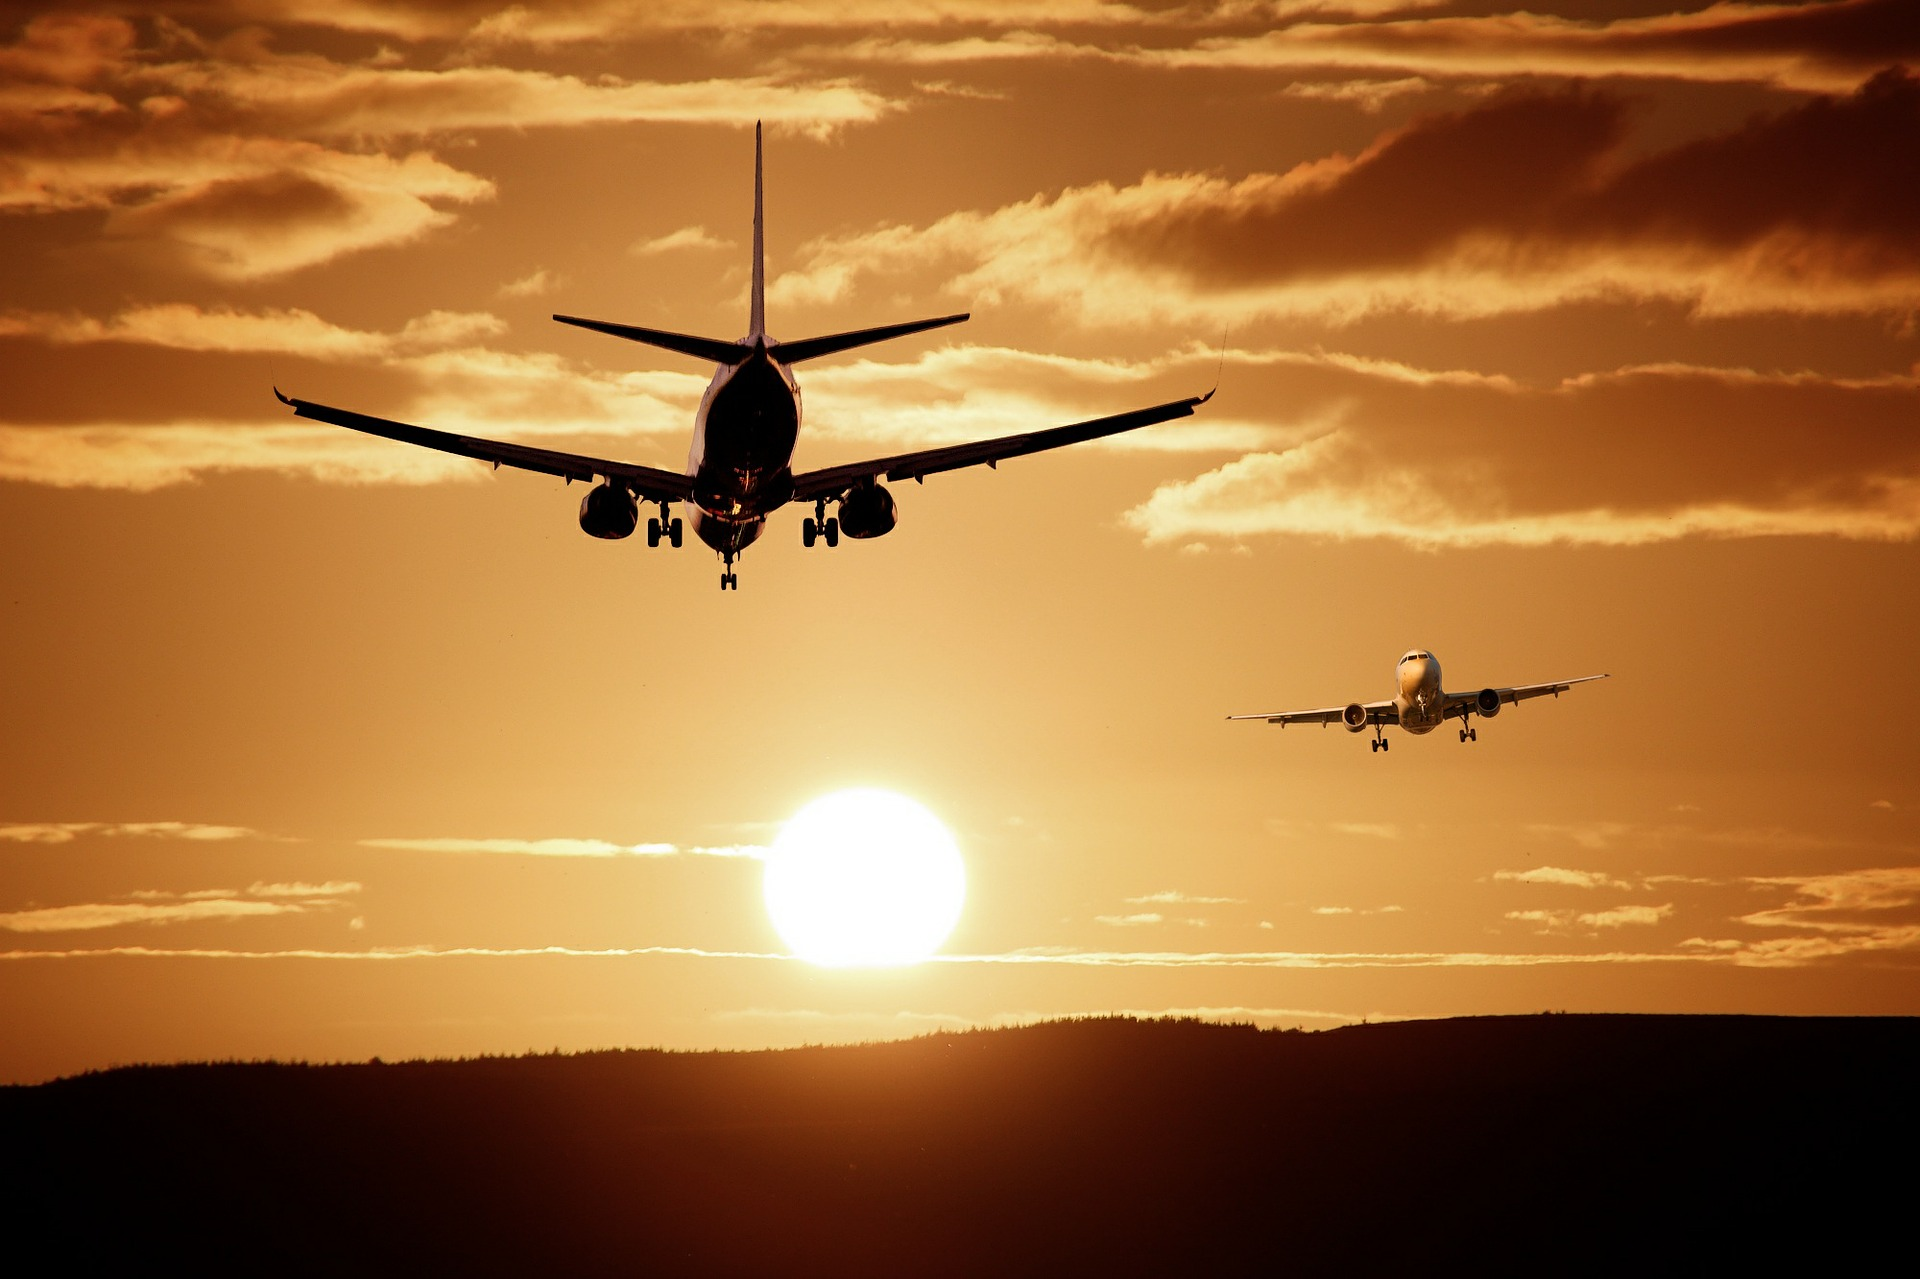 Major Airline Saves Millions of Dollars